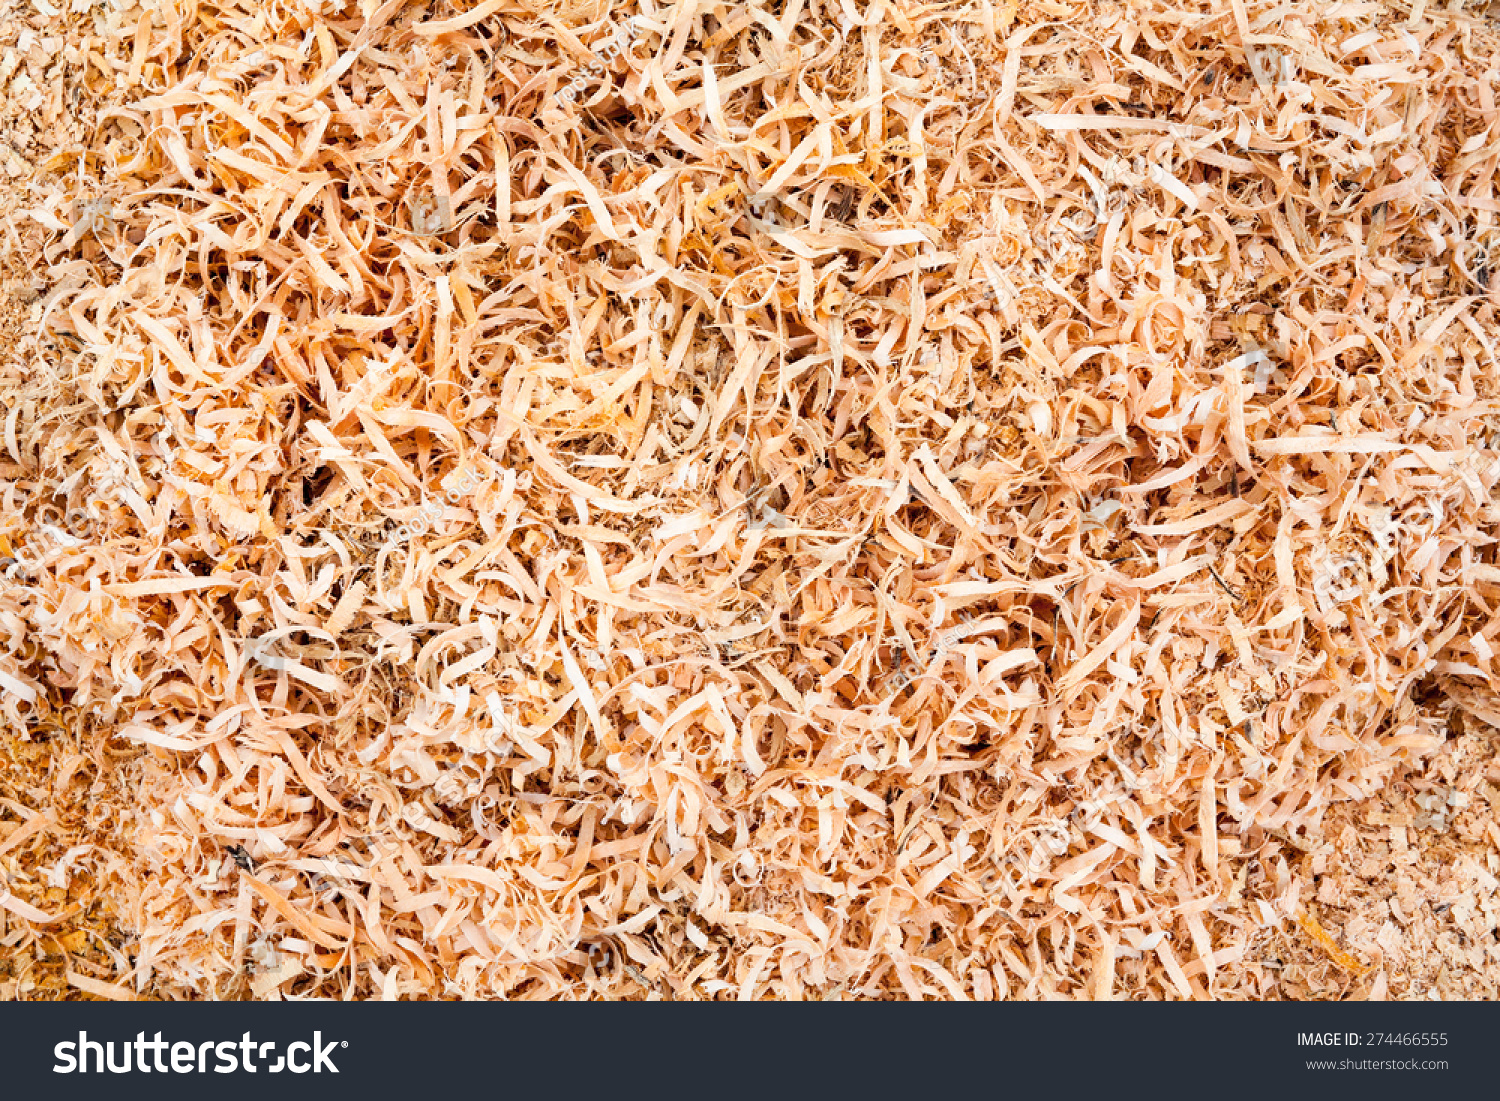 Pile Wood Sawdust Background Texture Stock Photo 274466555 ...